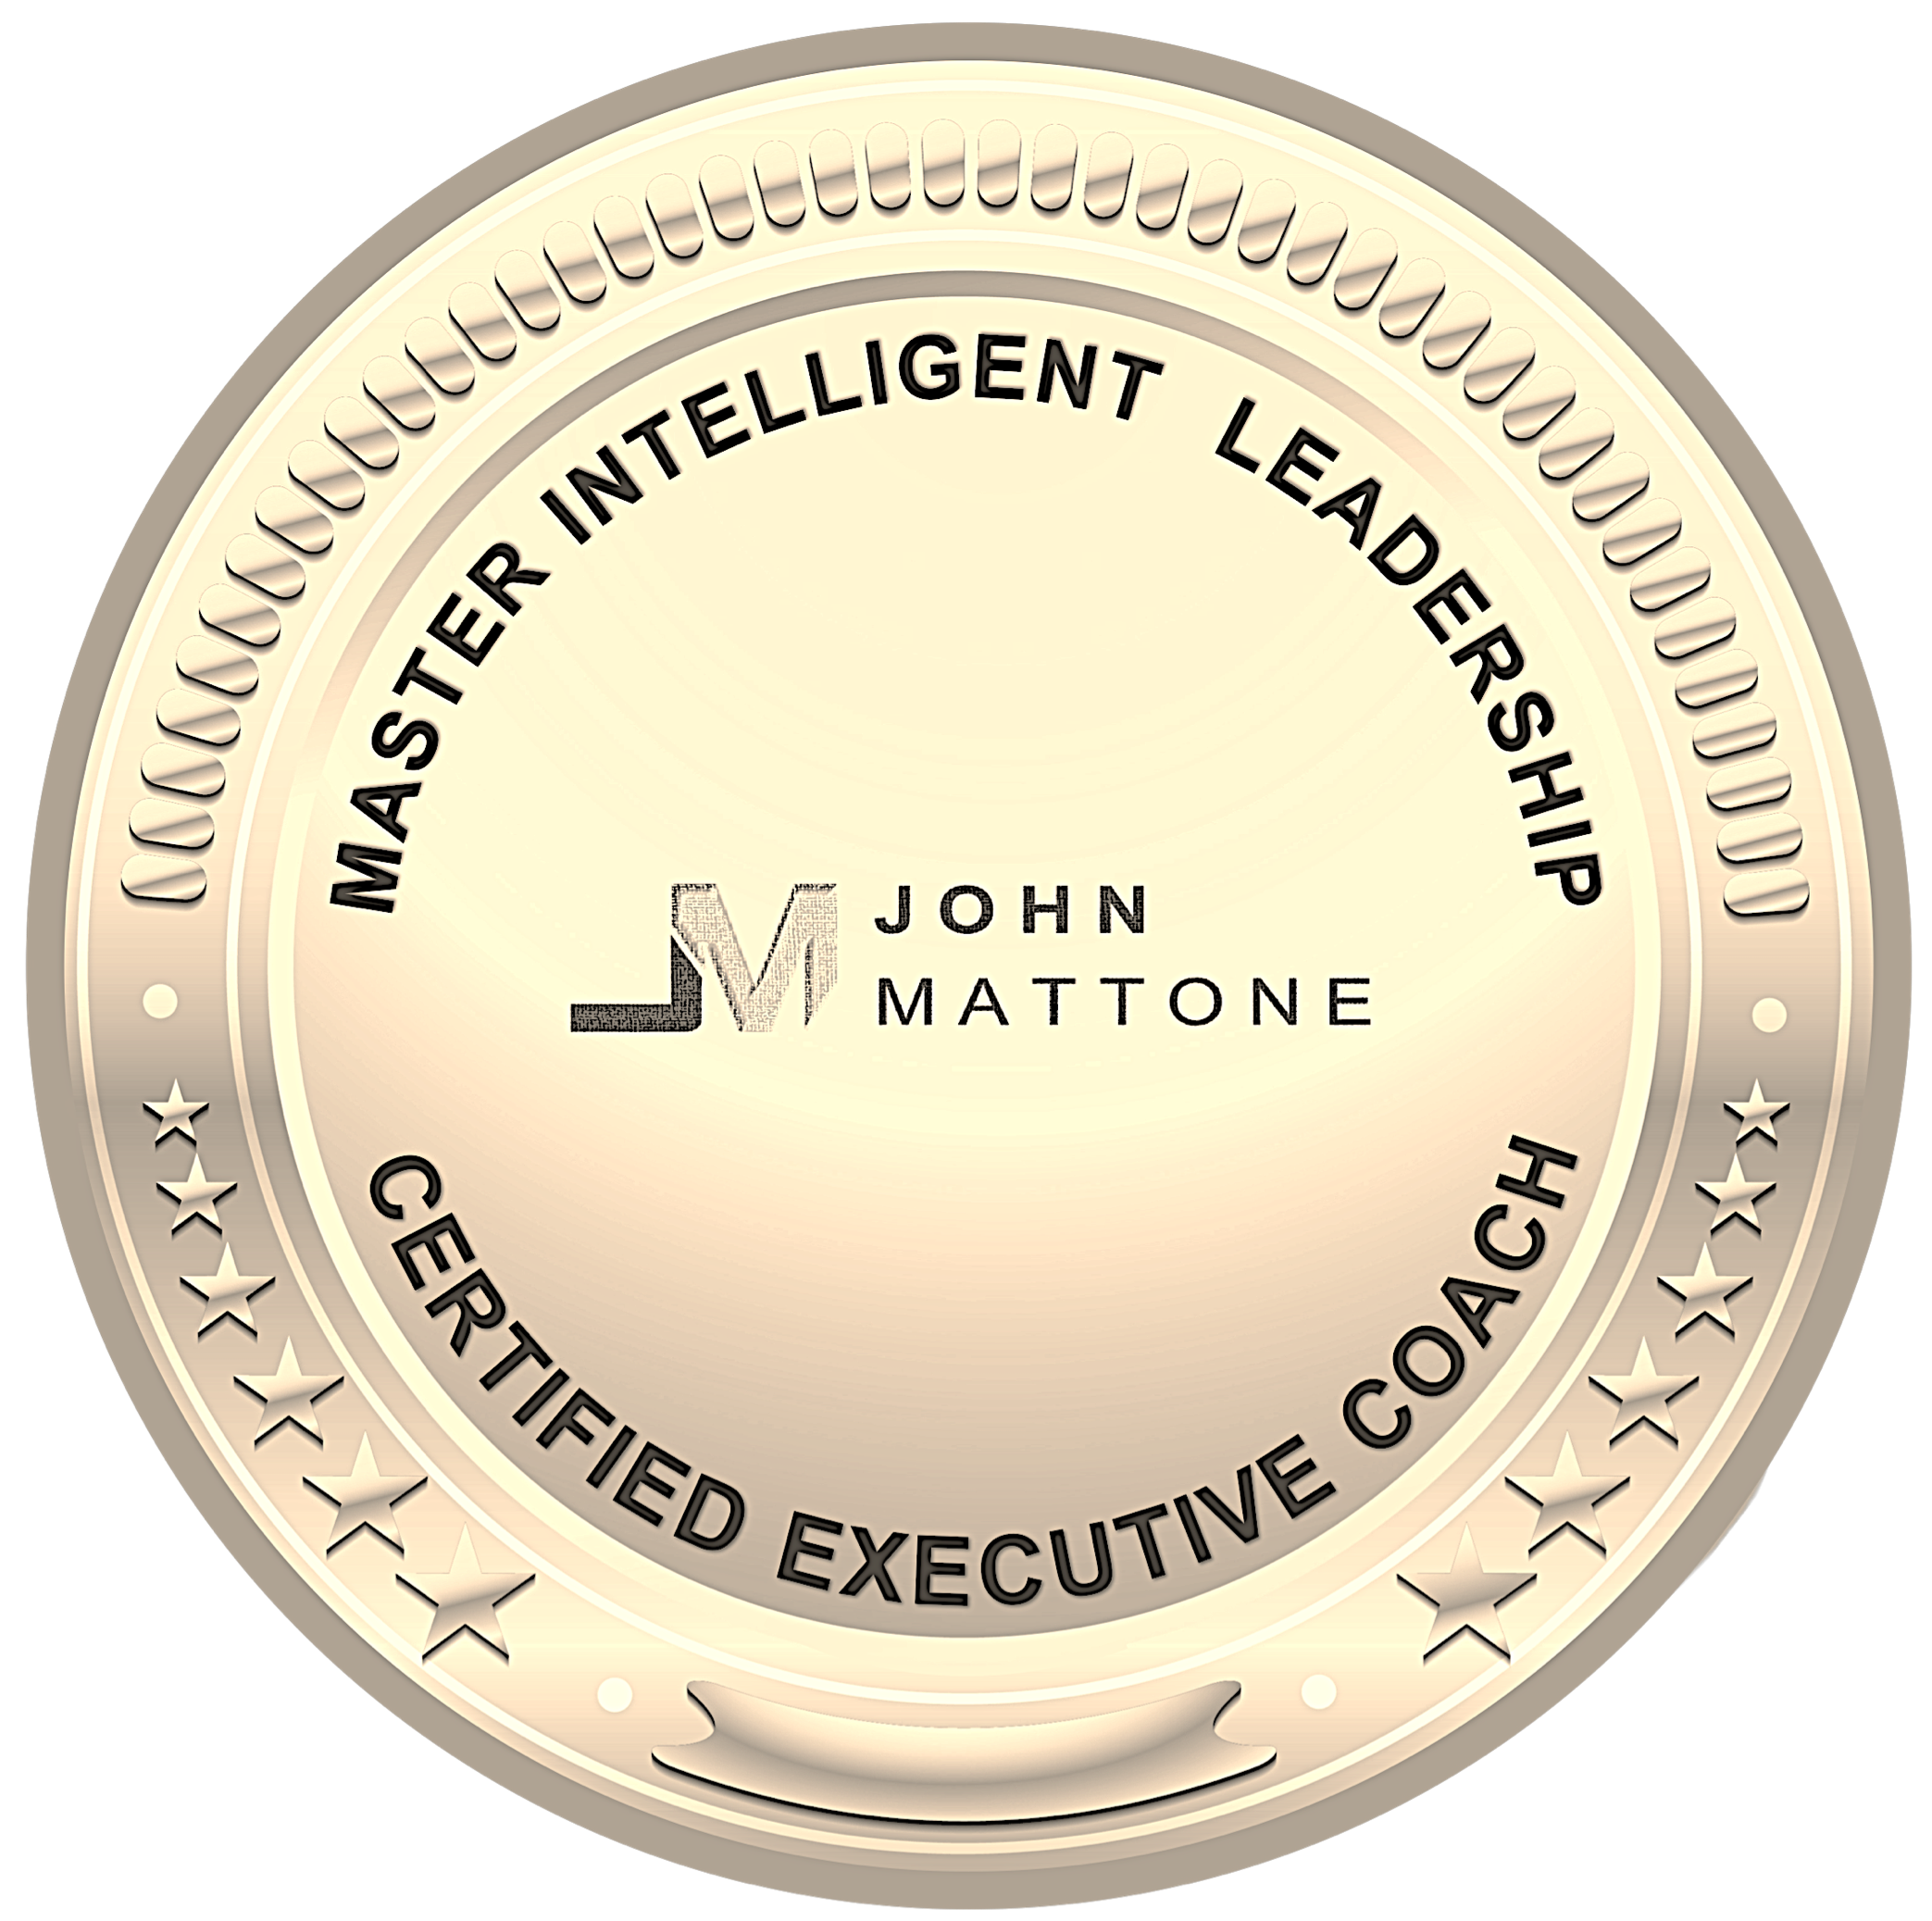 Nick Roud - #1 Master Certified Executive Coach on Intelligent Leadership in New Zealand.